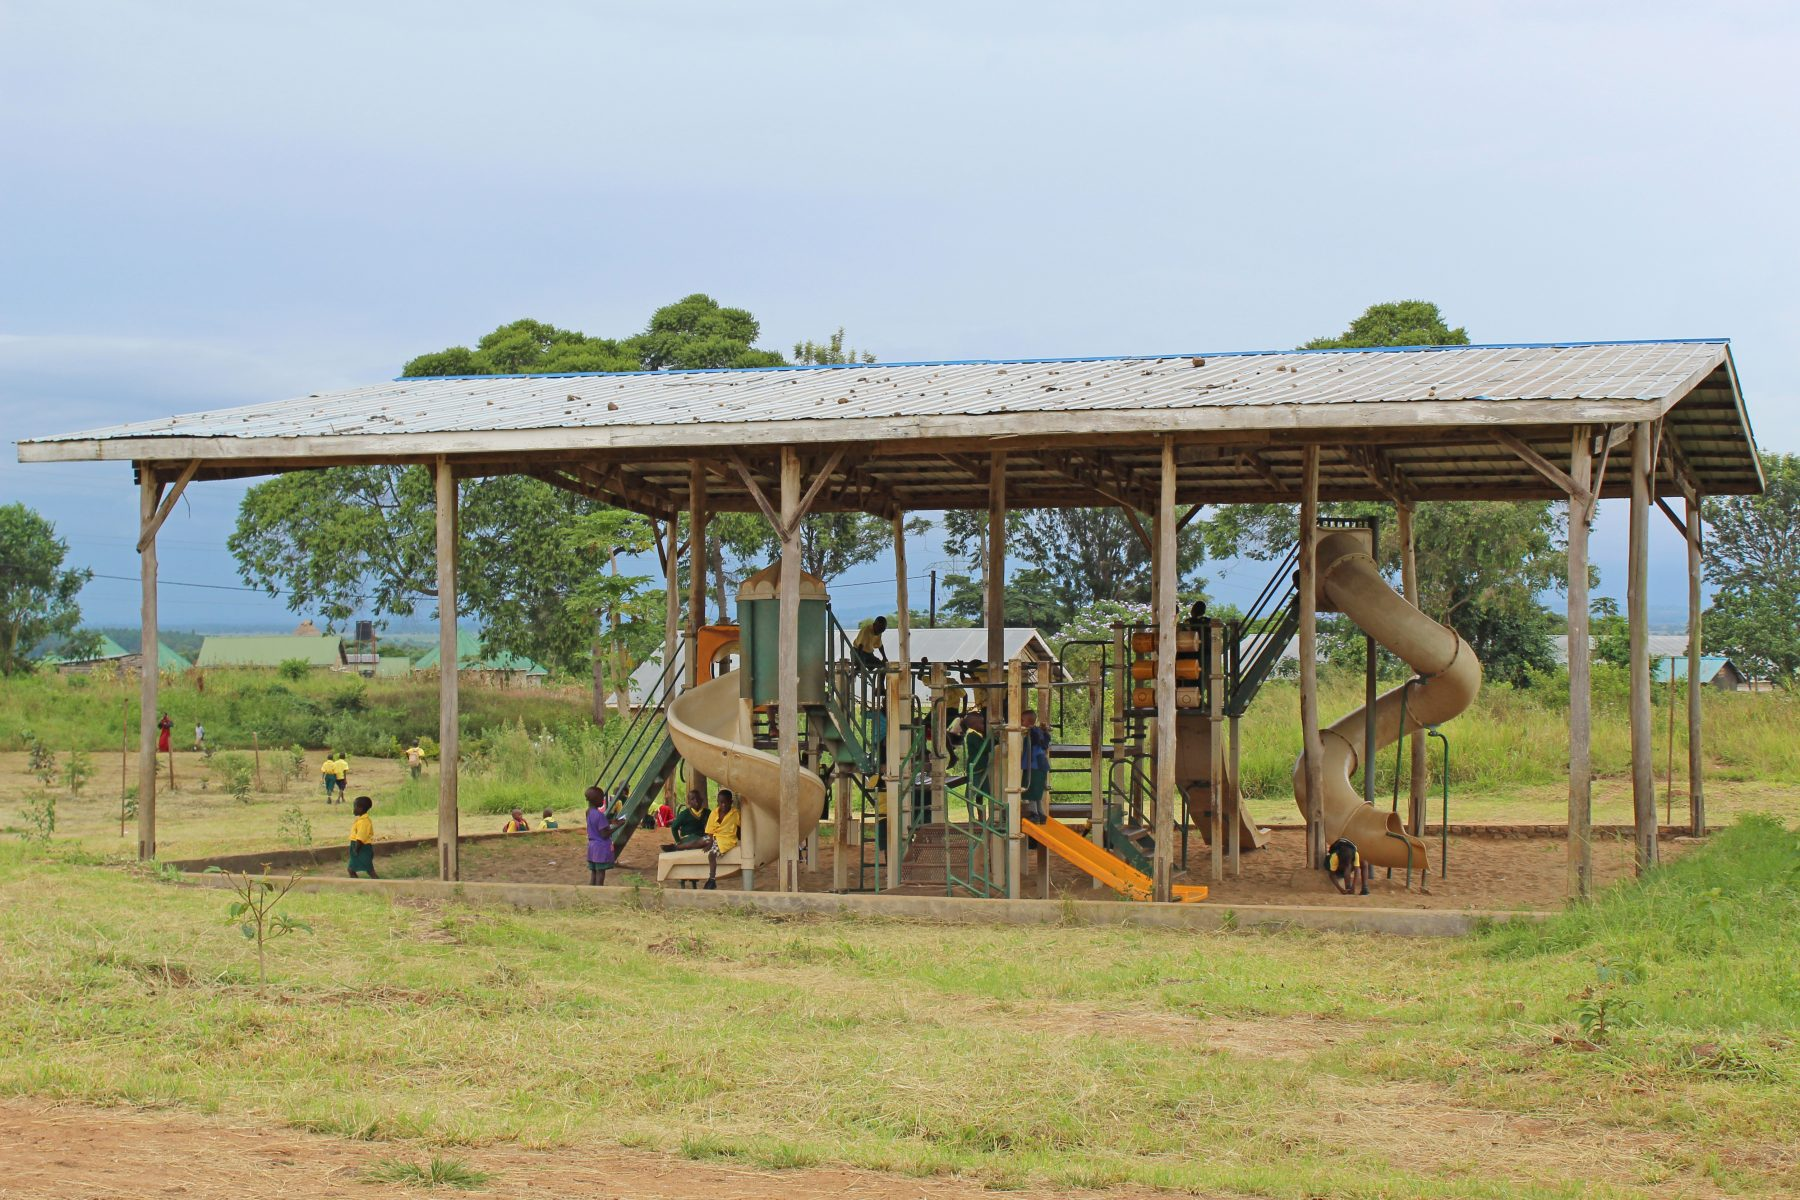 Children Playing on EWCV Covered Play Structure